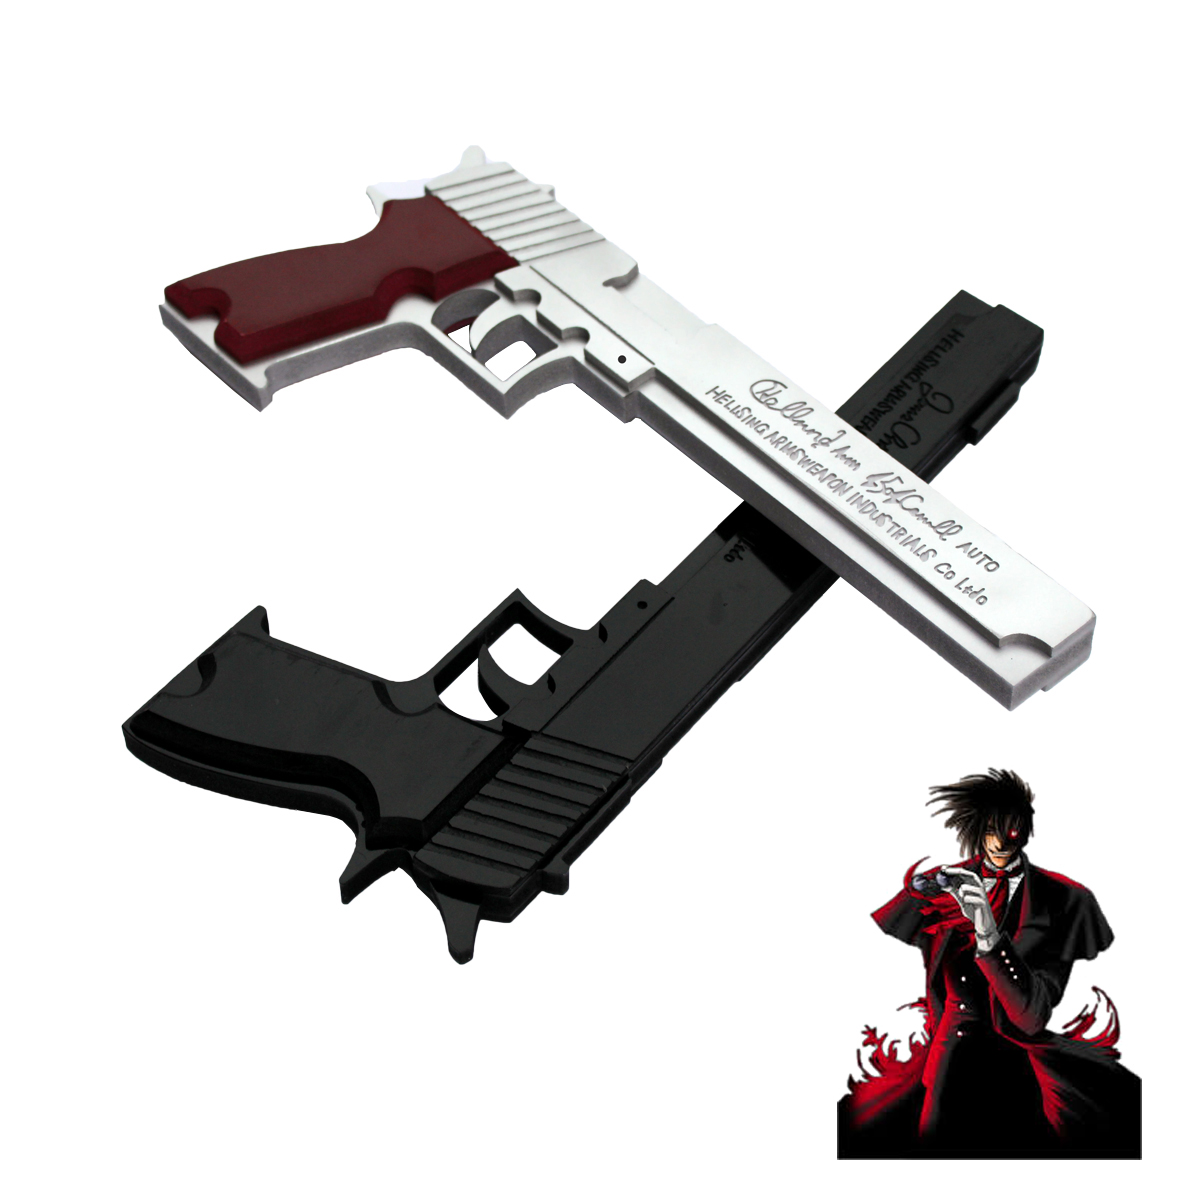 Costumes & Accessories Forceful New Hellsing Alucard Jackal Gun Cosplay Prop 14 Pvc Made Moderate Price